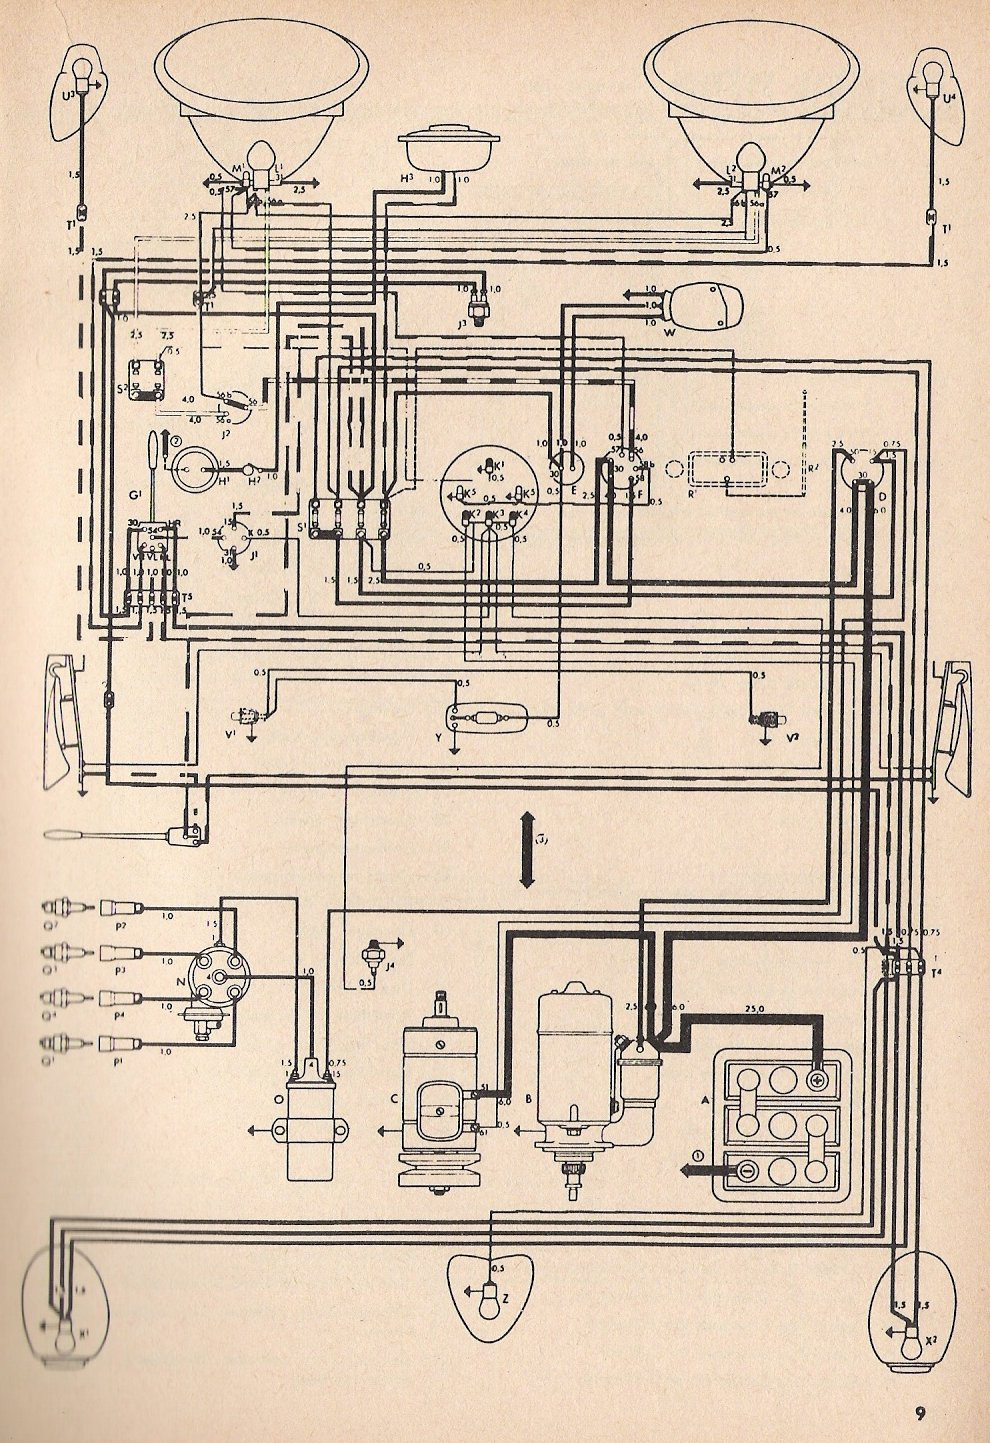 Type 1 Wiring Diagrams 1973 Bmw Motorcycle Diagram